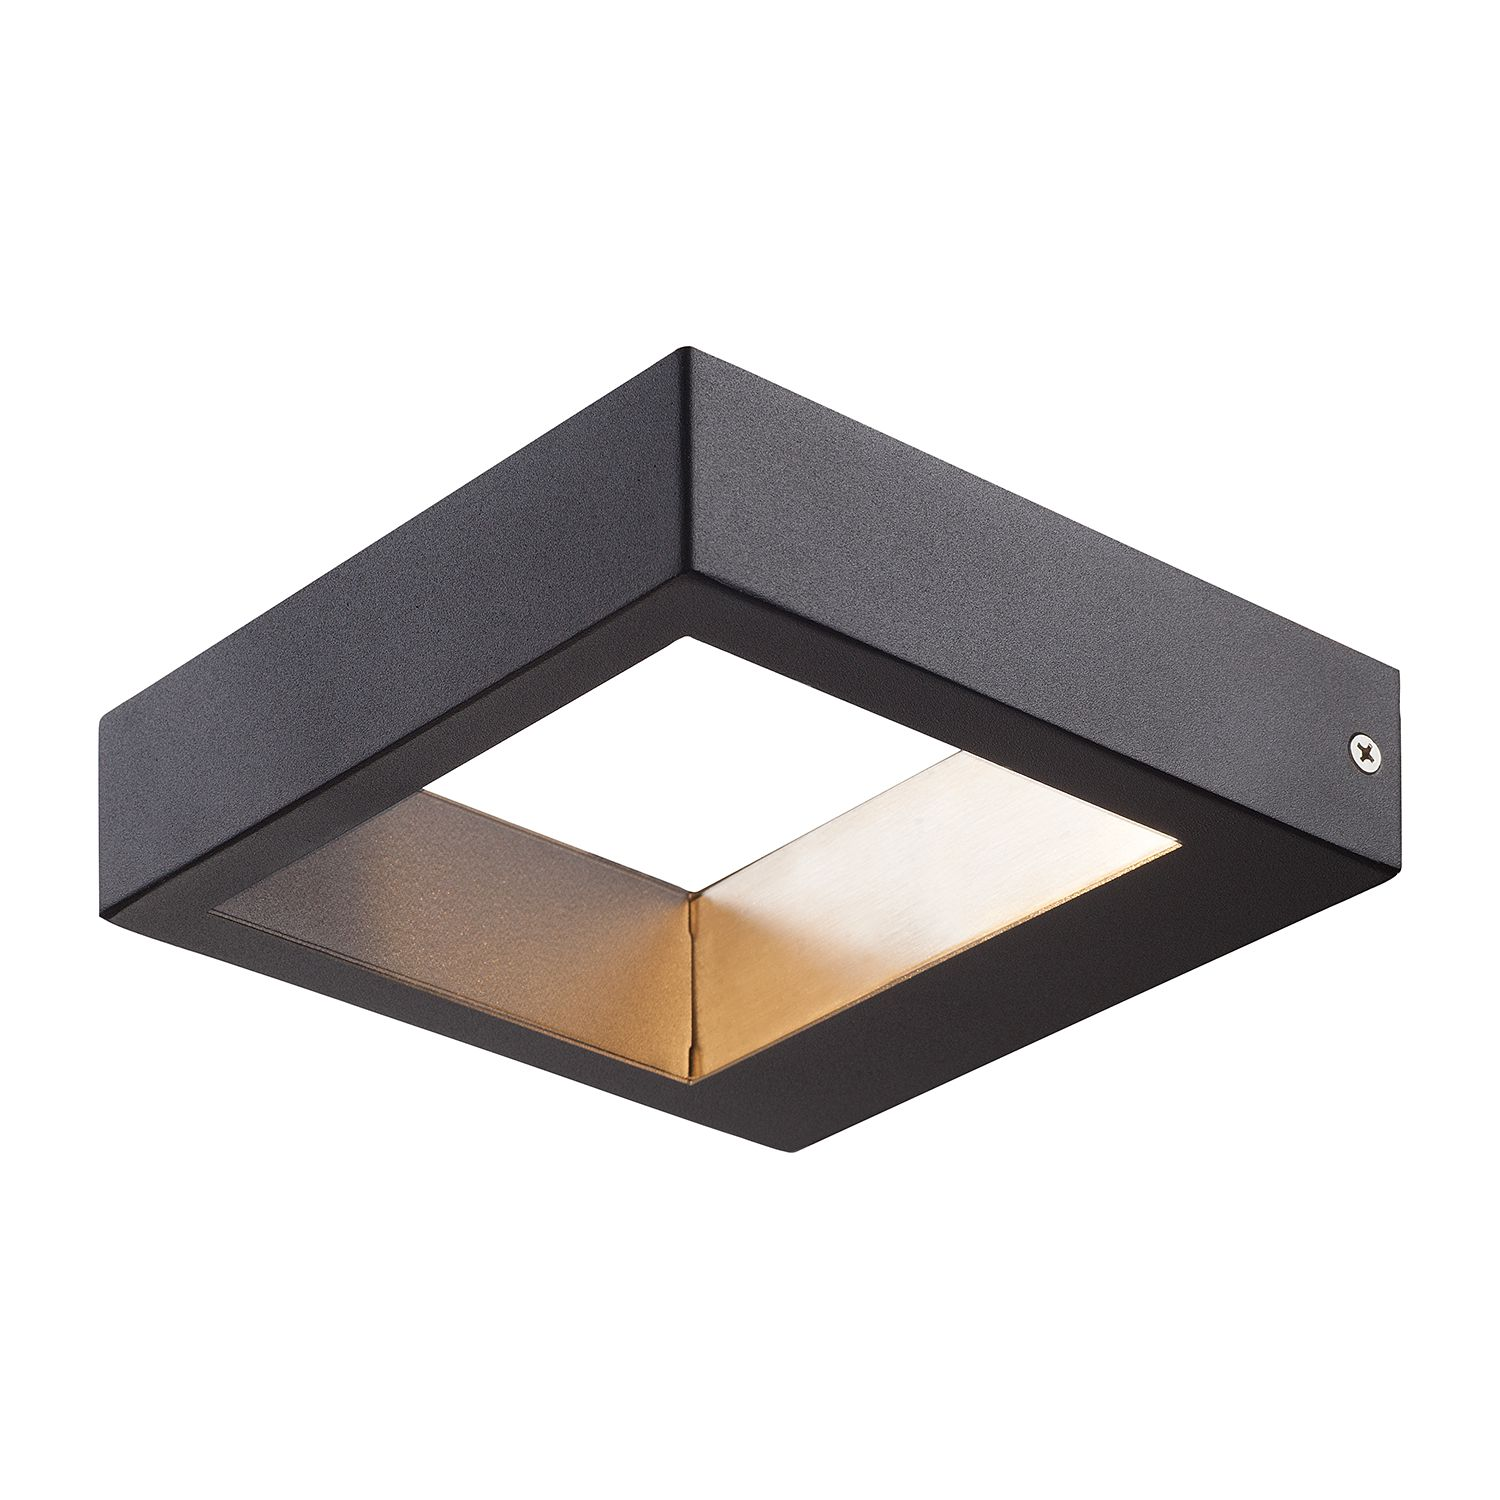 energie  A+, LED-buitenlamp Avon I - staal - 1 lichtbron, Nordlux